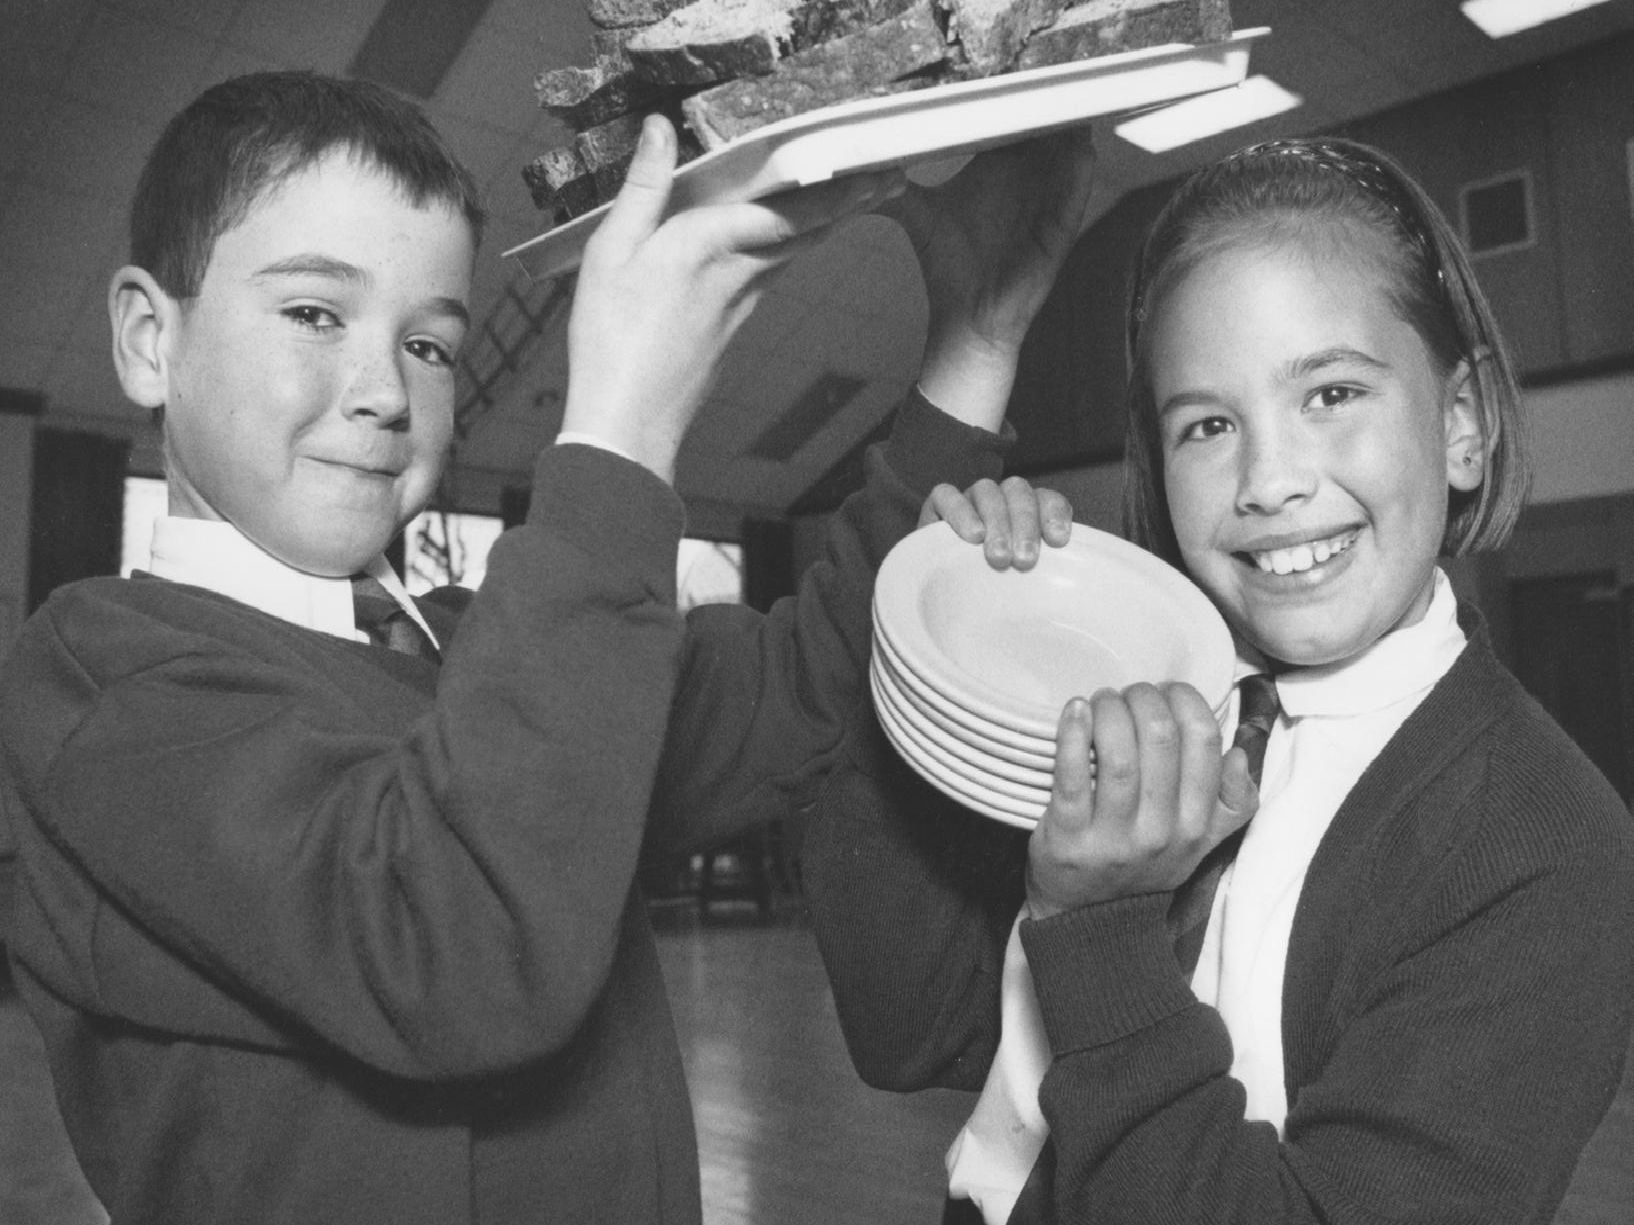 St Peter's RC Primary School got involved in a soup making day in October, 1997 - pictured serving the soup with style were pupils Jim Soden and Billie-Jo Perrin.